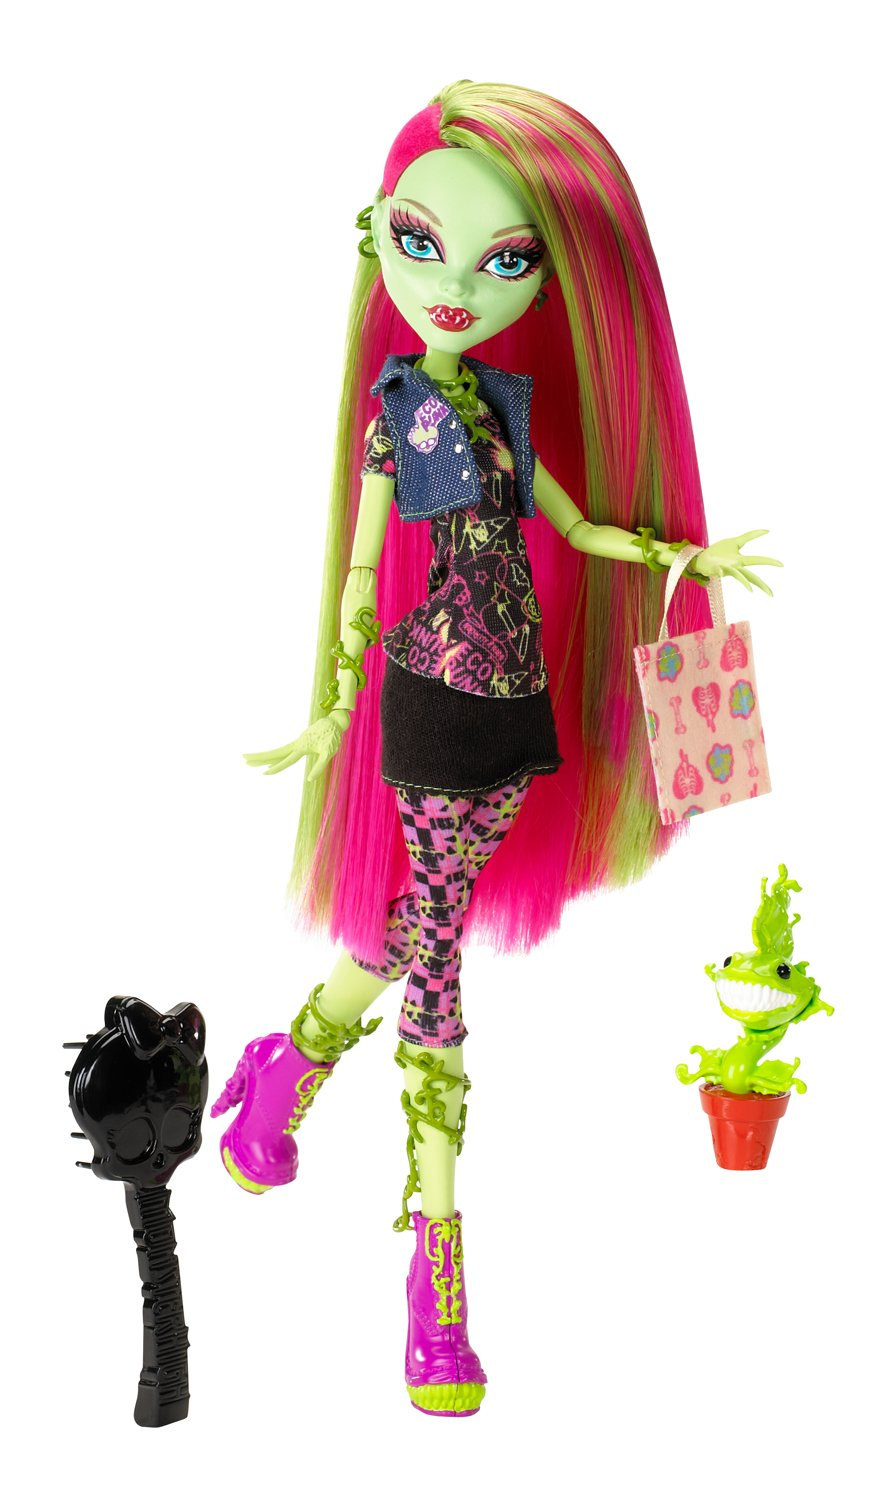 Amazoncom Monster High Doll Venus McFlytrap Daughter of the